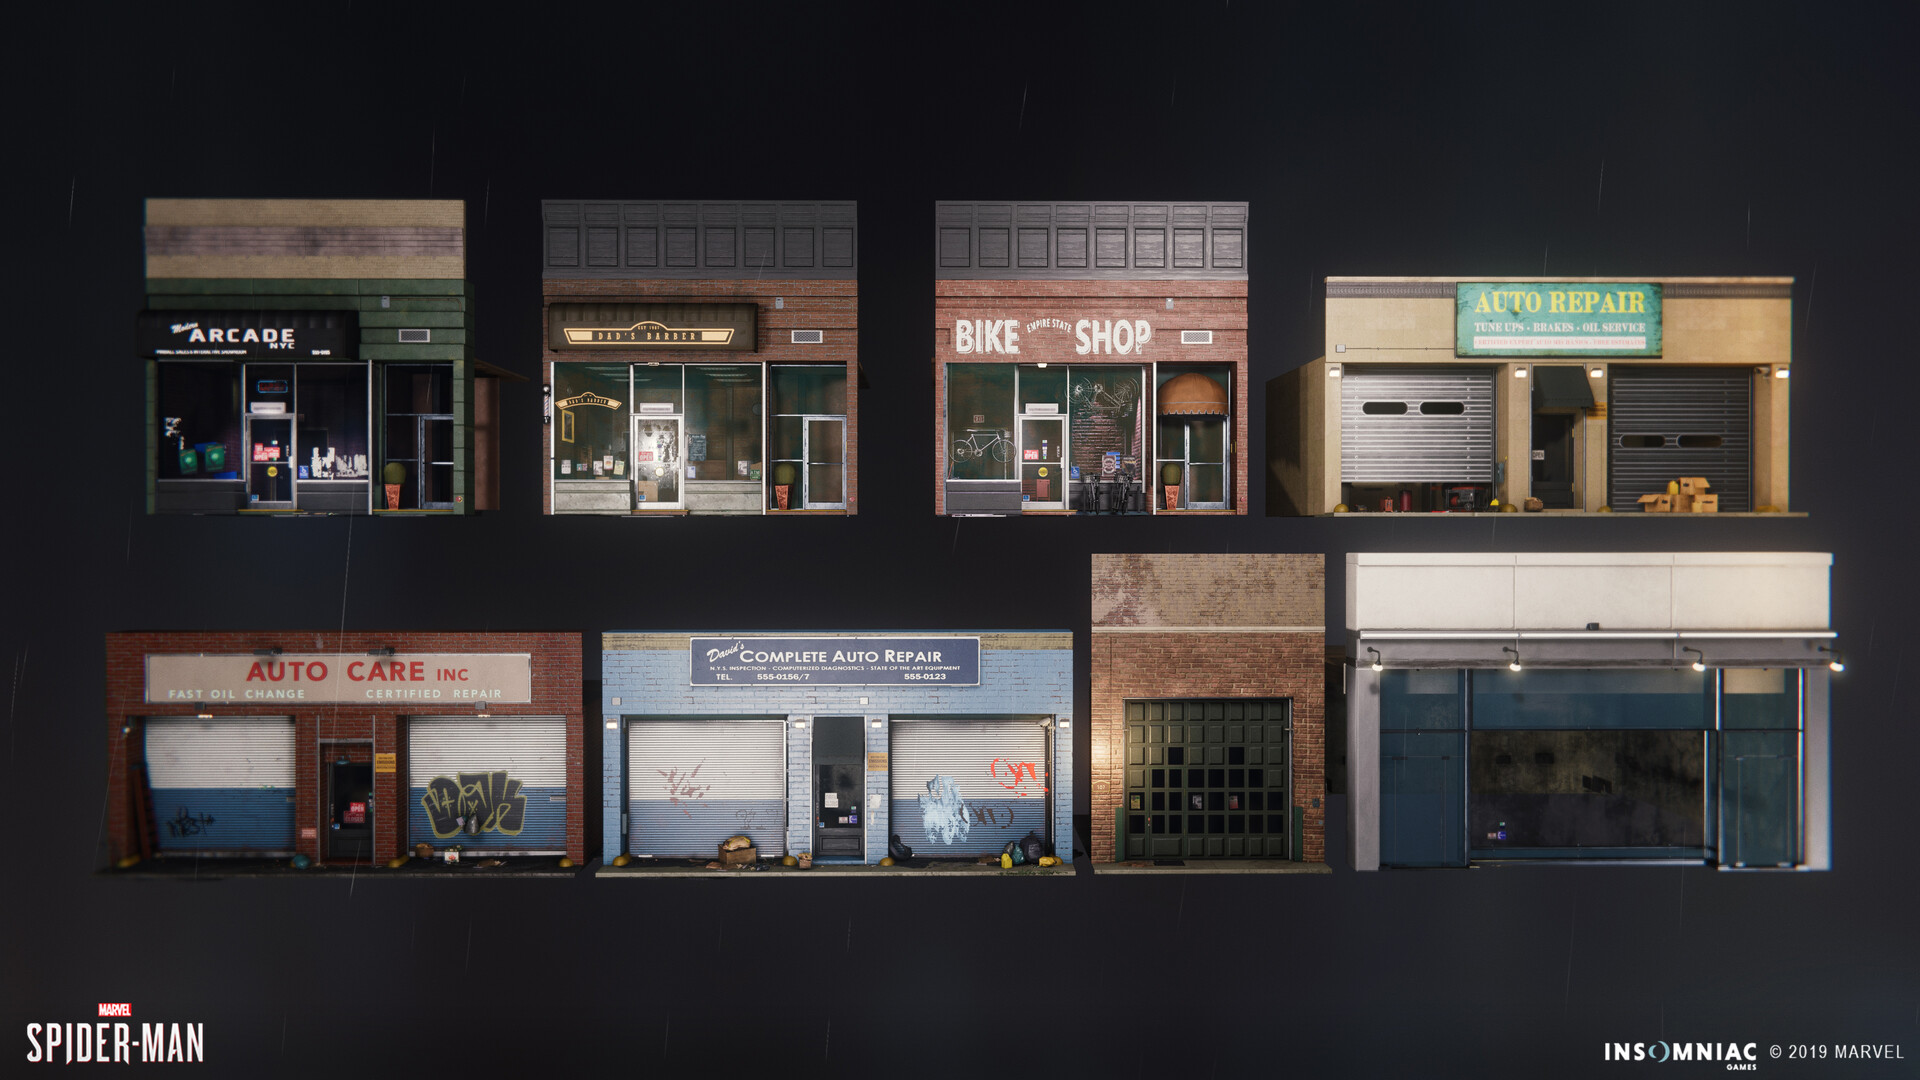 Facade modeling, Set dressing/variations